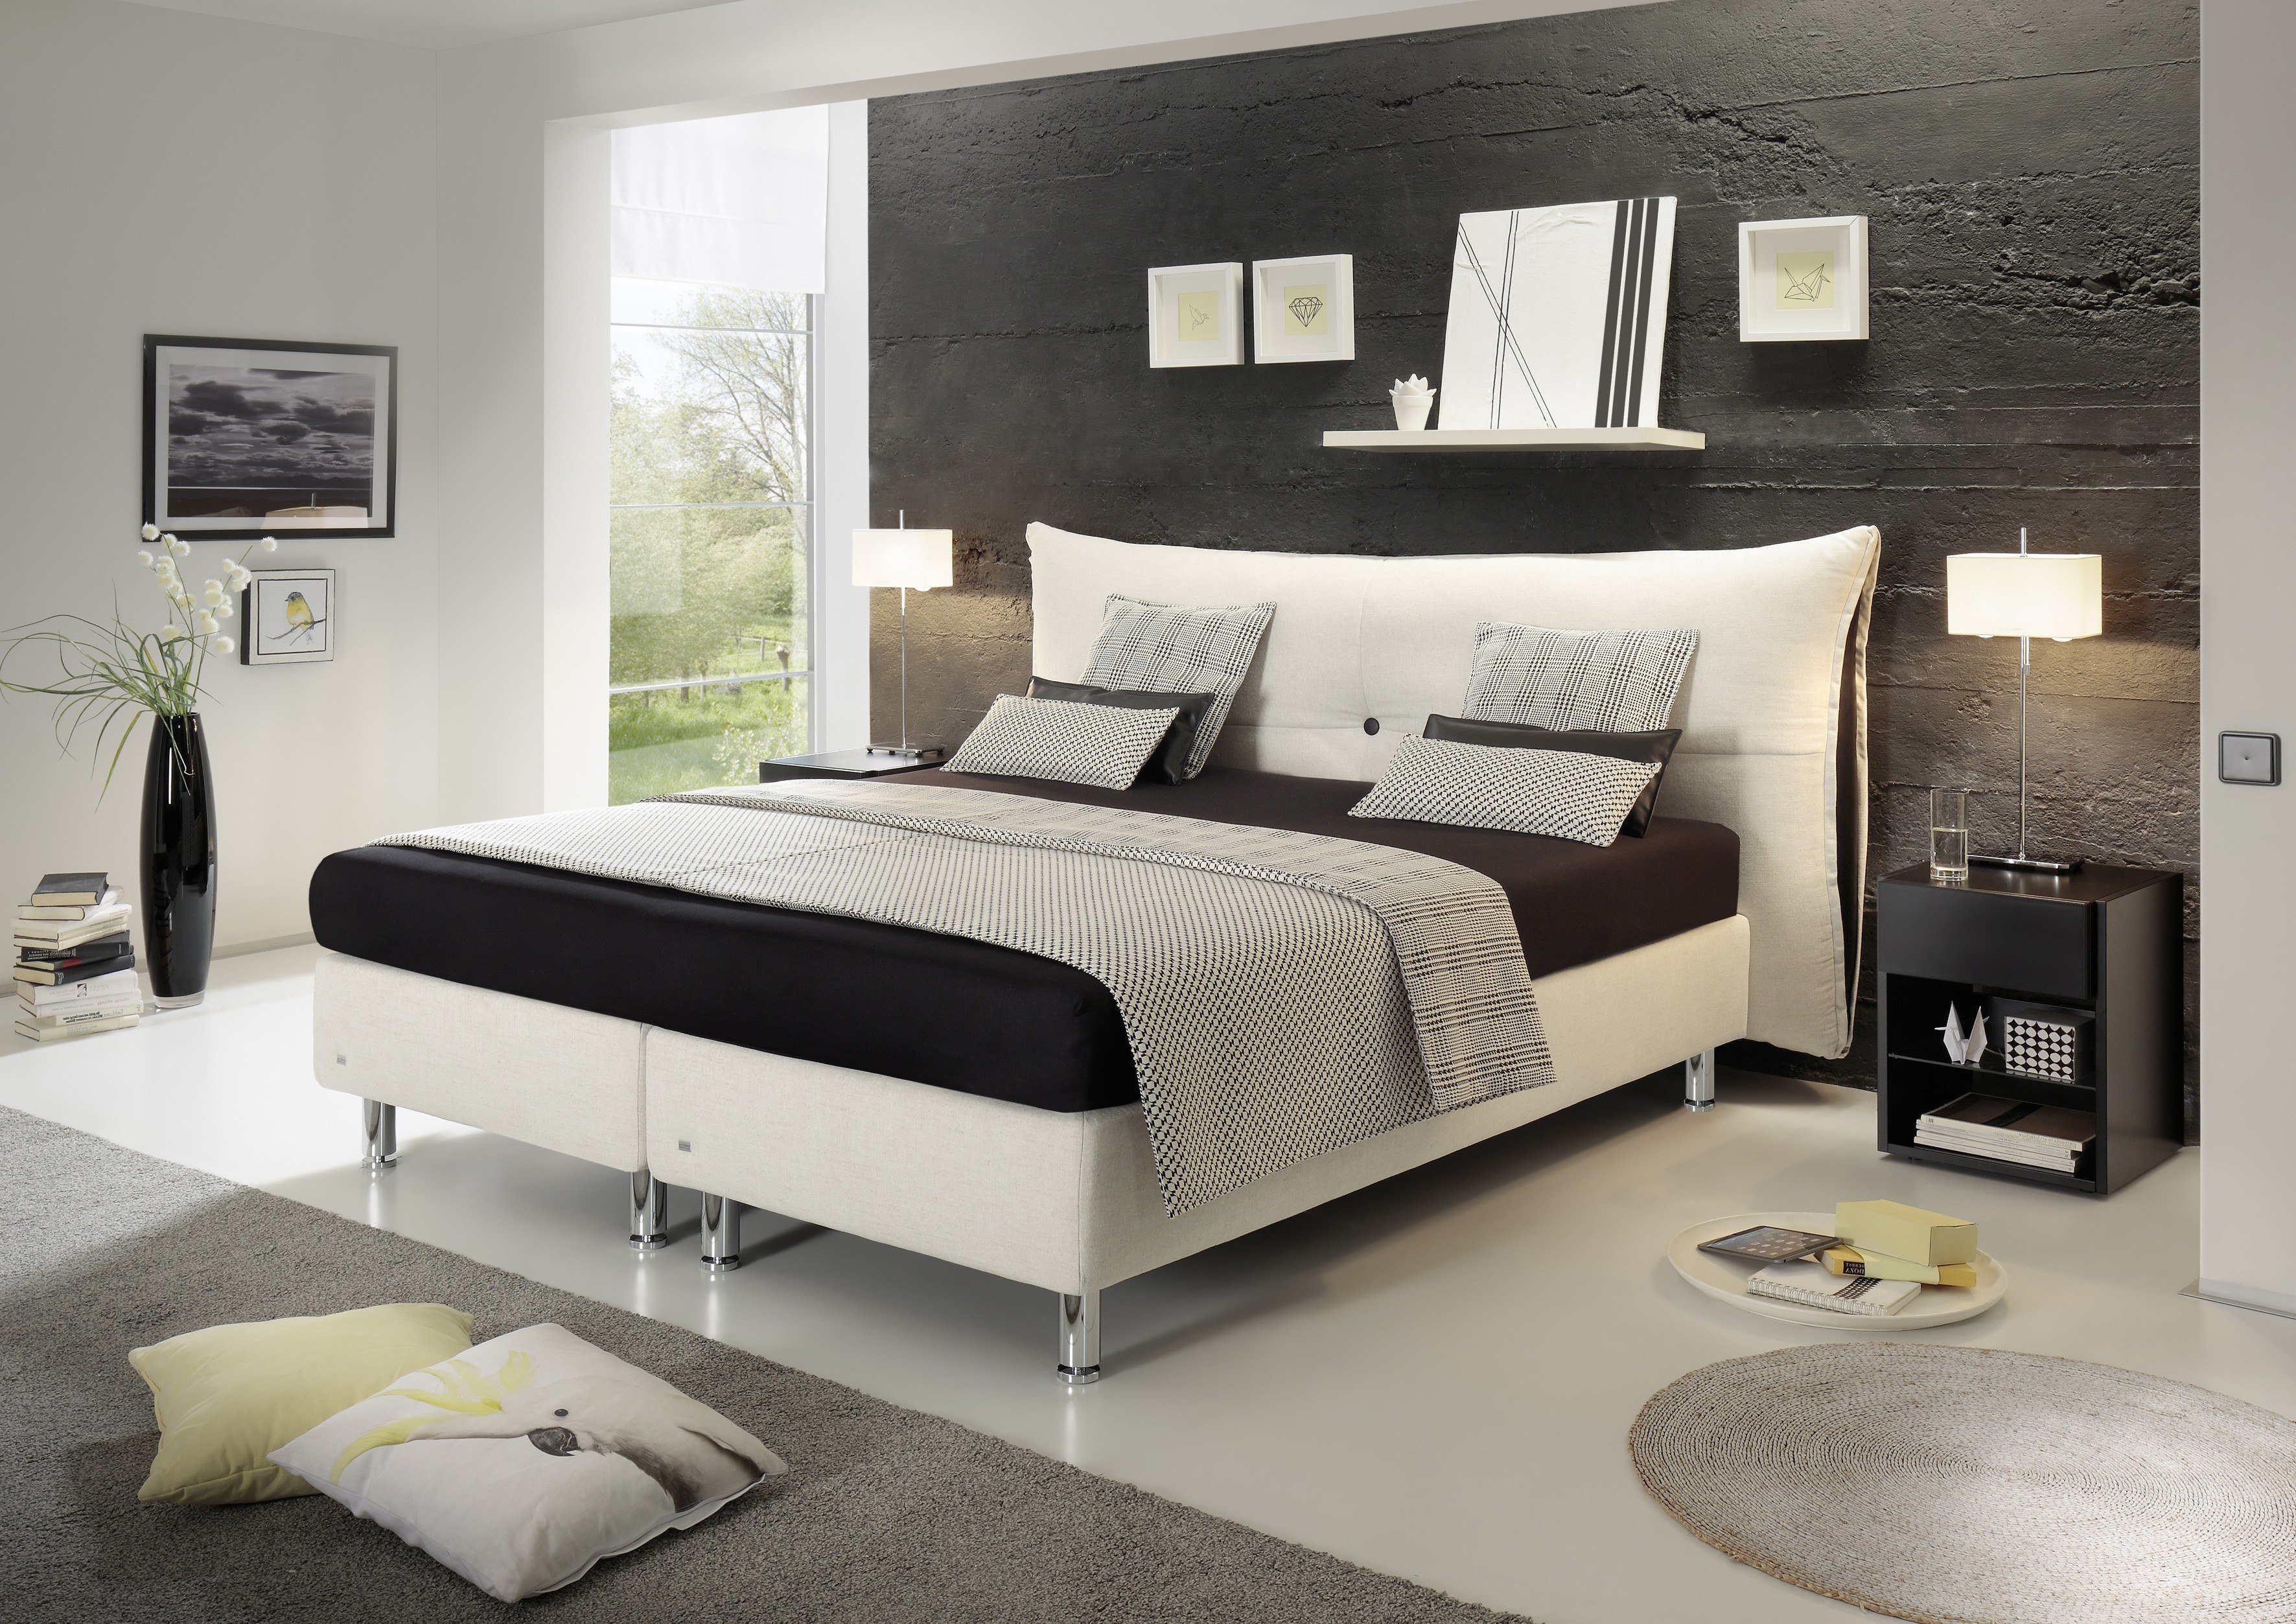 ruf boxspringbett preis miinu teppich haus dekoration. Black Bedroom Furniture Sets. Home Design Ideas